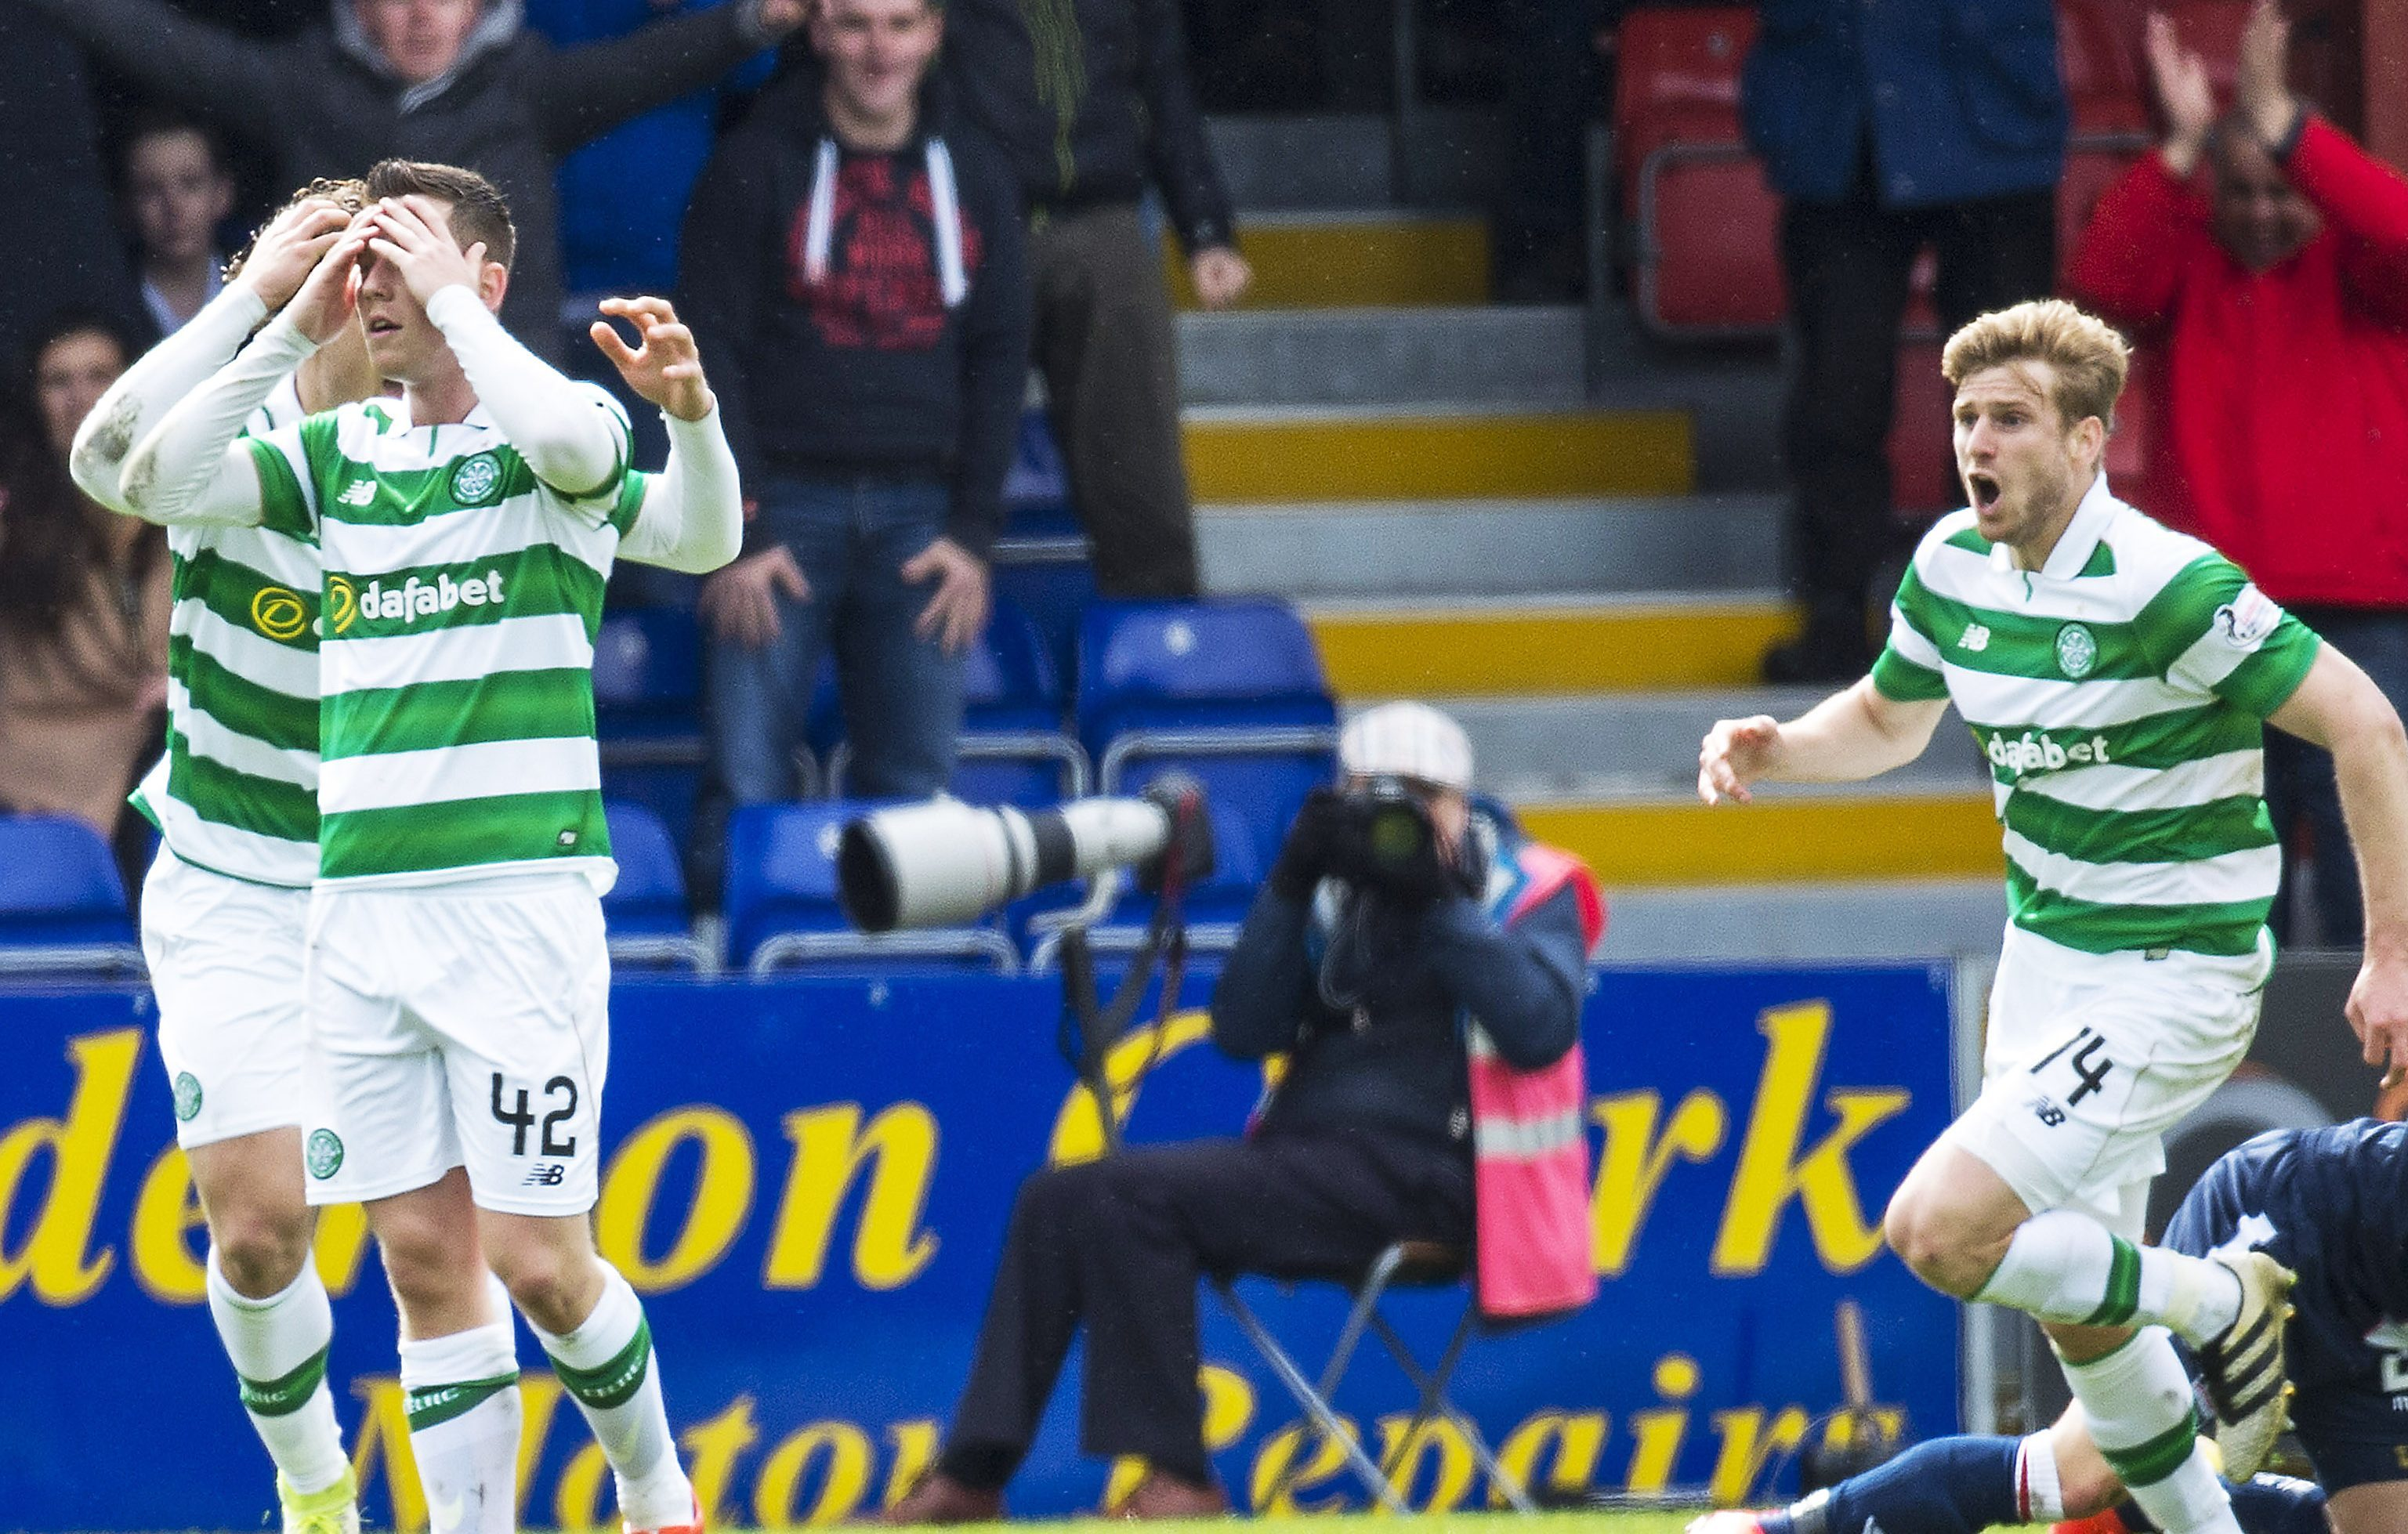 The Celtic players show what they think of Alex Schalk's dive.